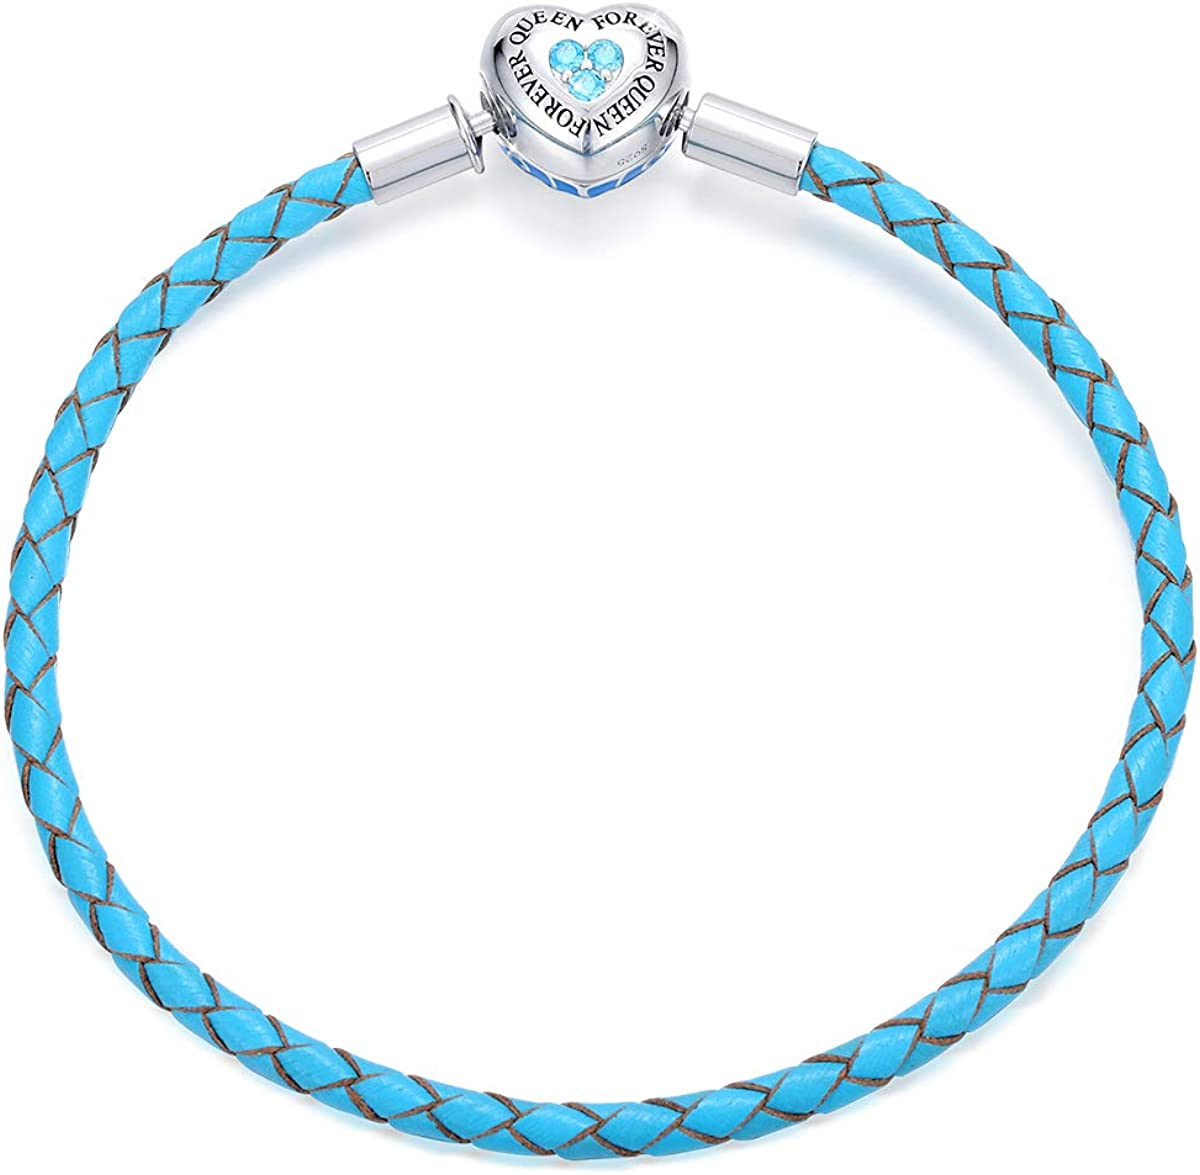 Sacramento Mall FOREVER favorite QUEEN GenuineBlue Braided 925 Bracelet with Leather